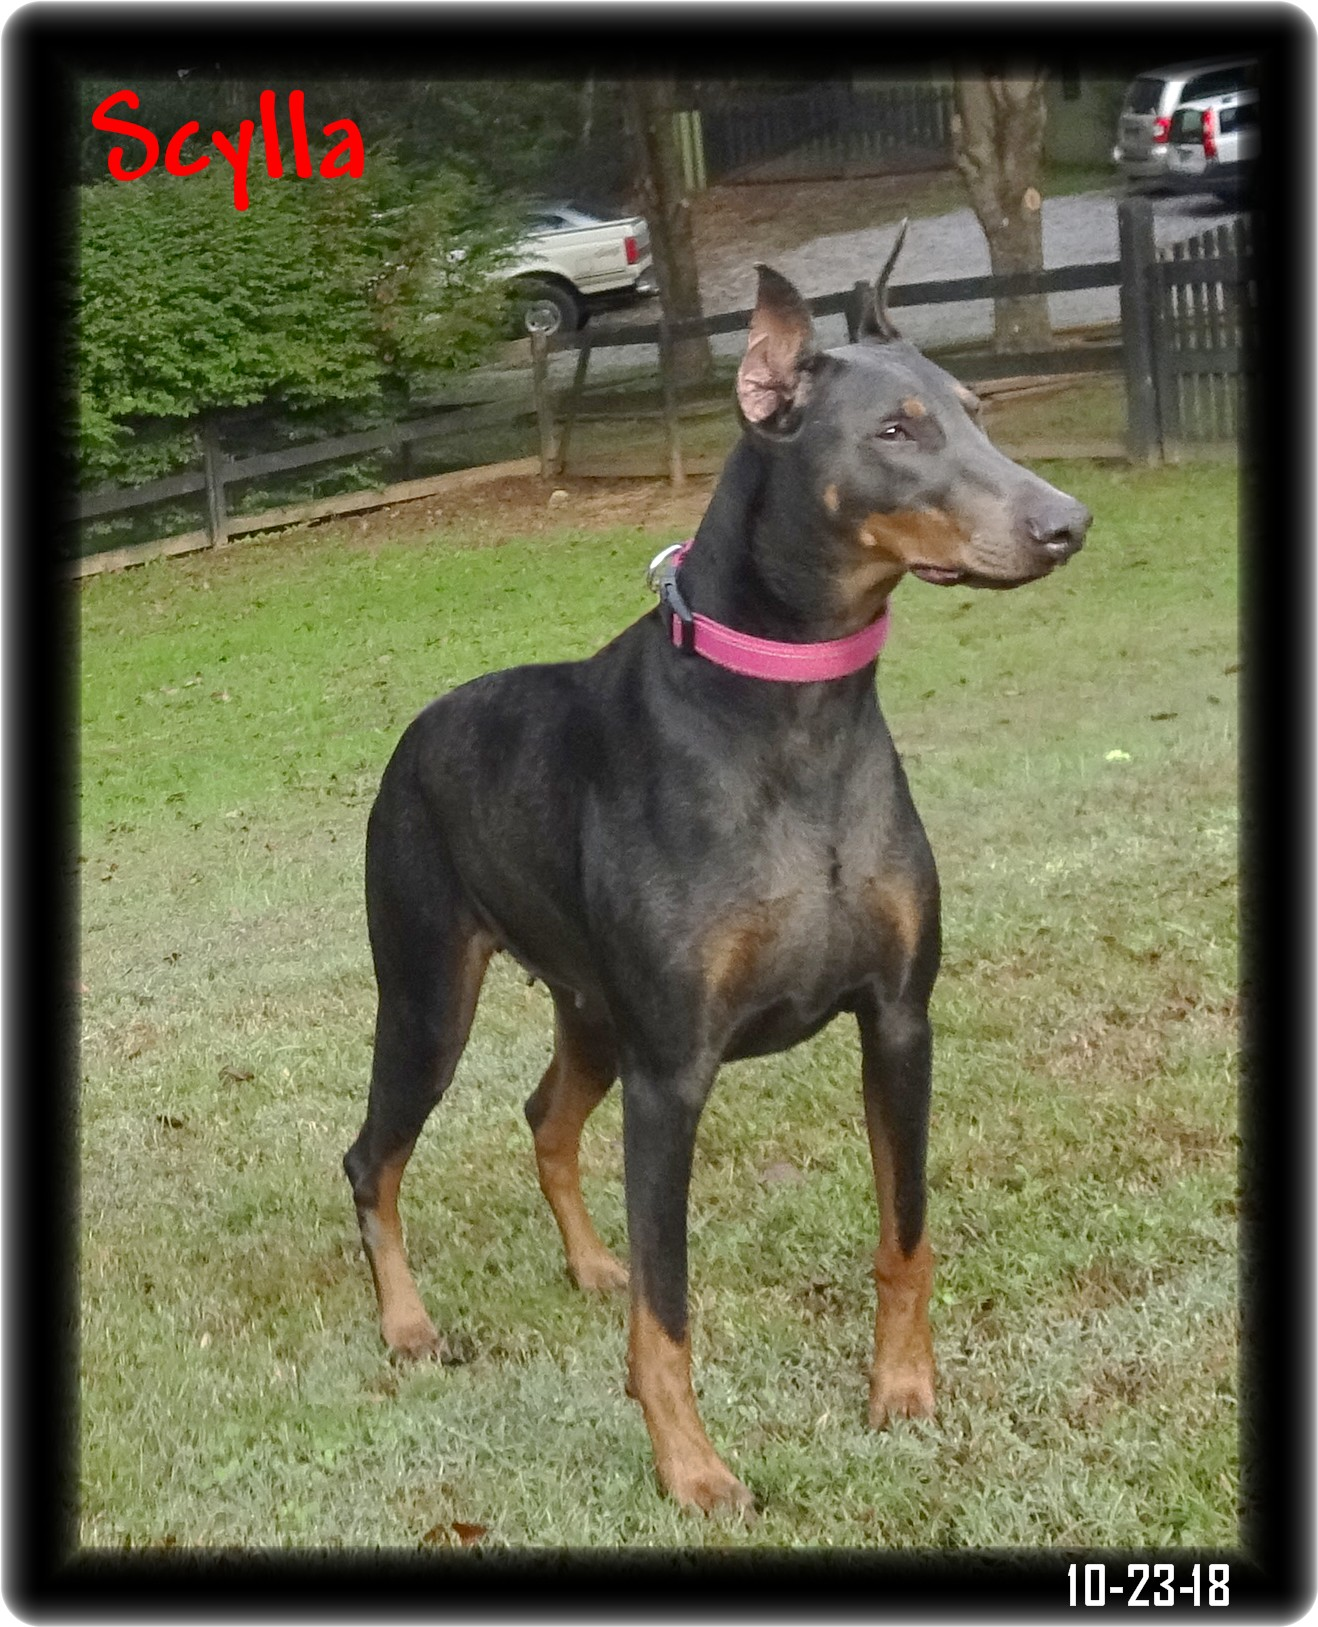 Misty born 12-15-18 out of Scylla & Caspian  - in training ... Reserved ...New Port TN